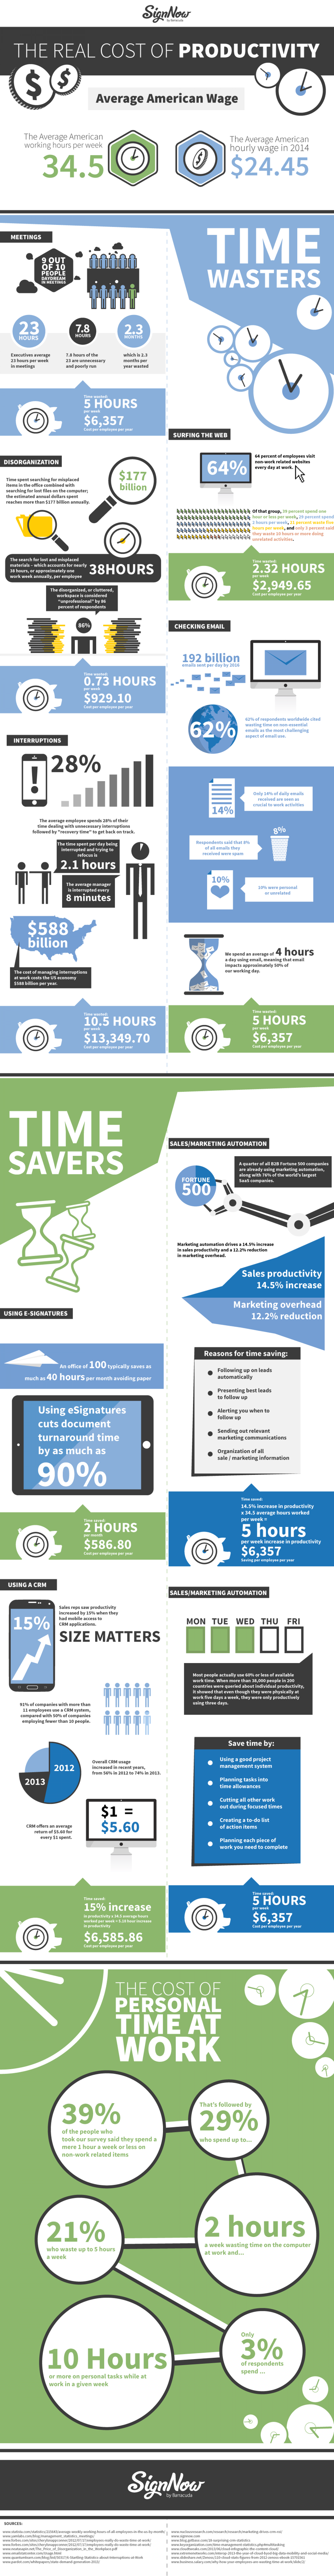 The real cost of productivity Infographic